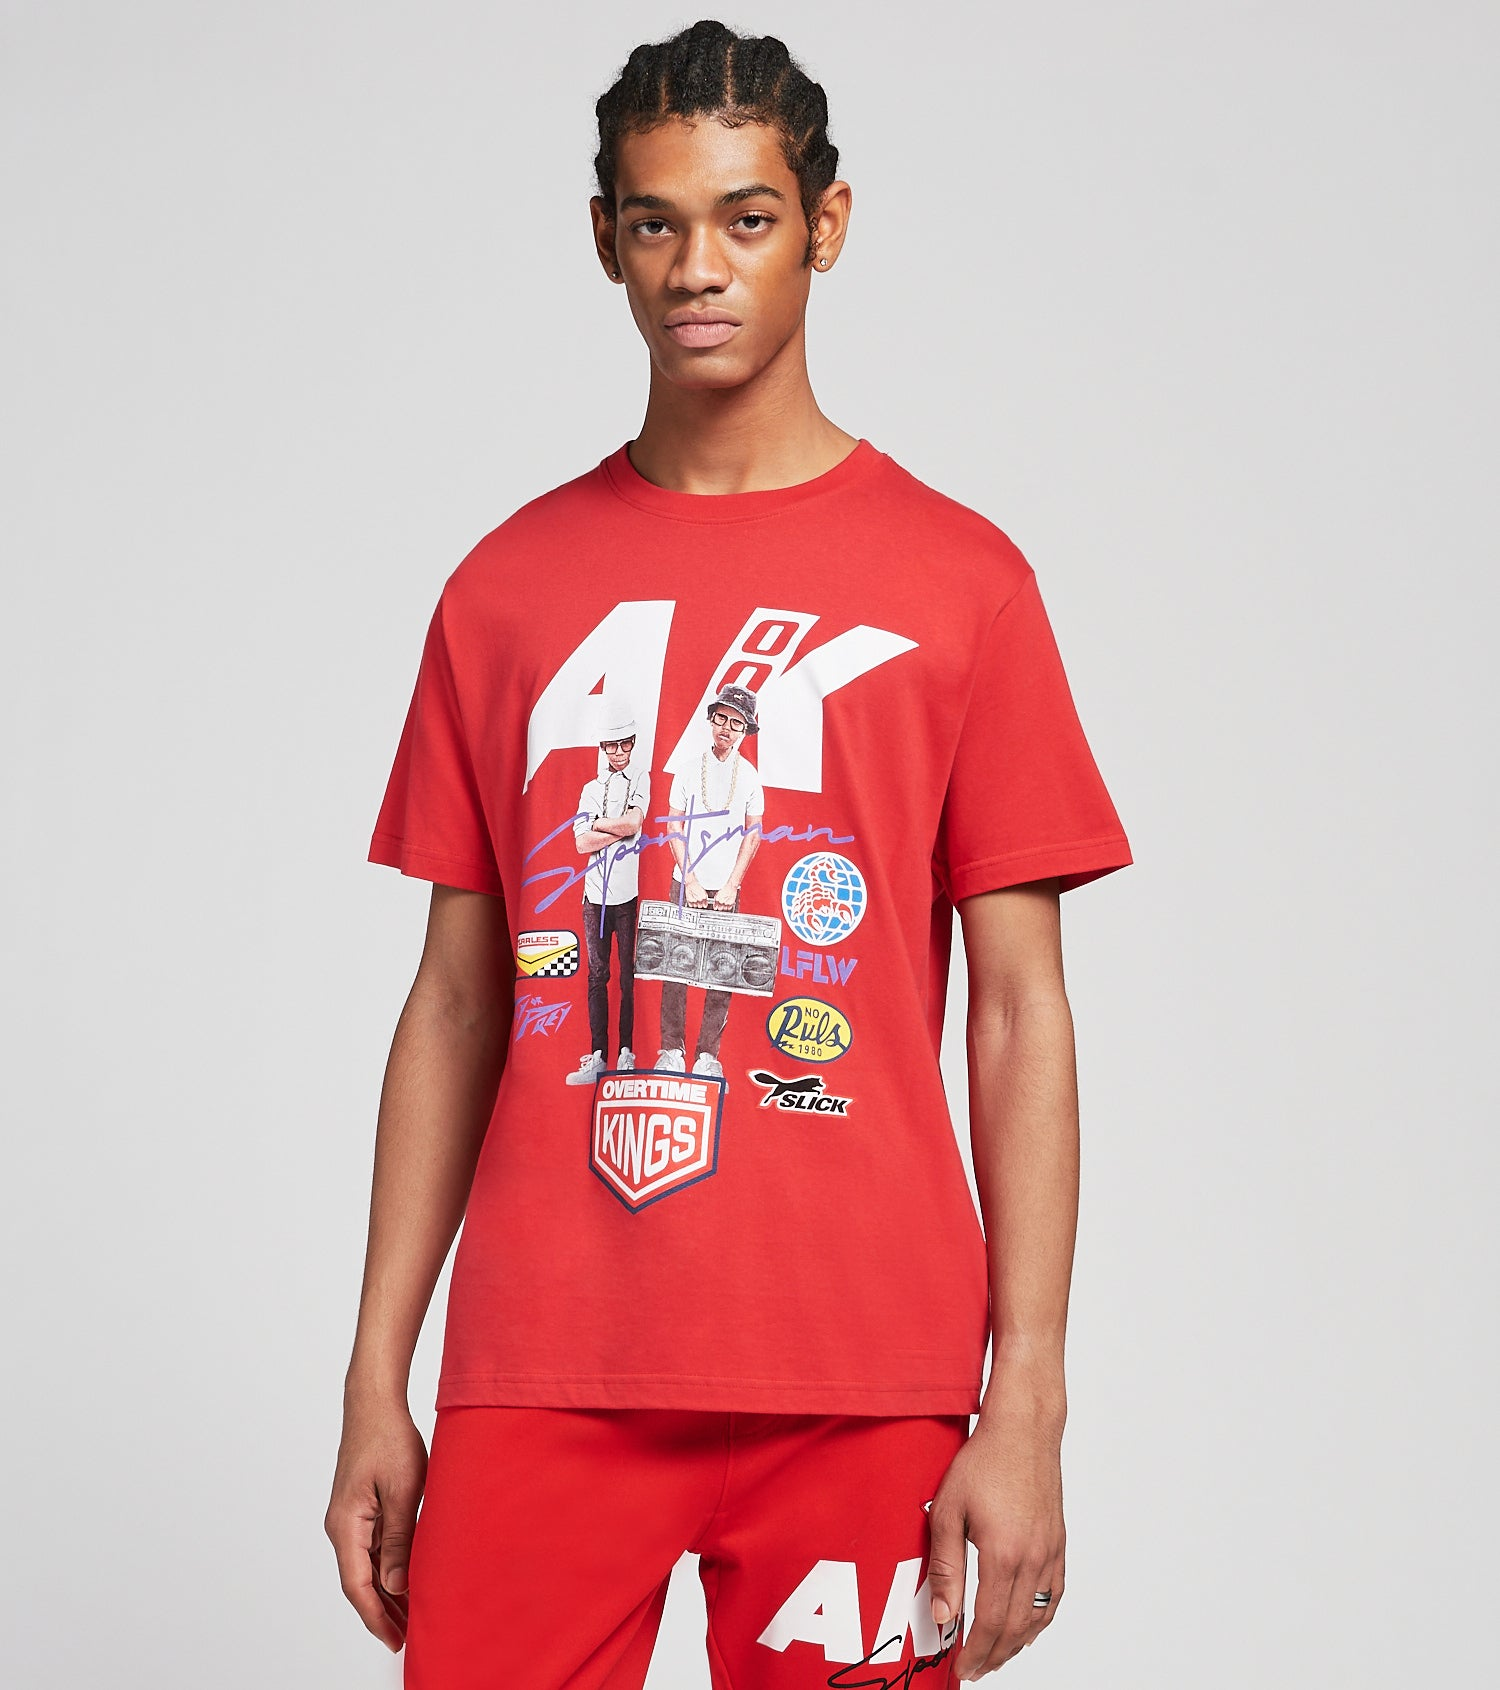 A.K.O.O.  AKOO Kids Short Sleeve Tee  Red - 7017203-RED | Jimmy Jazz